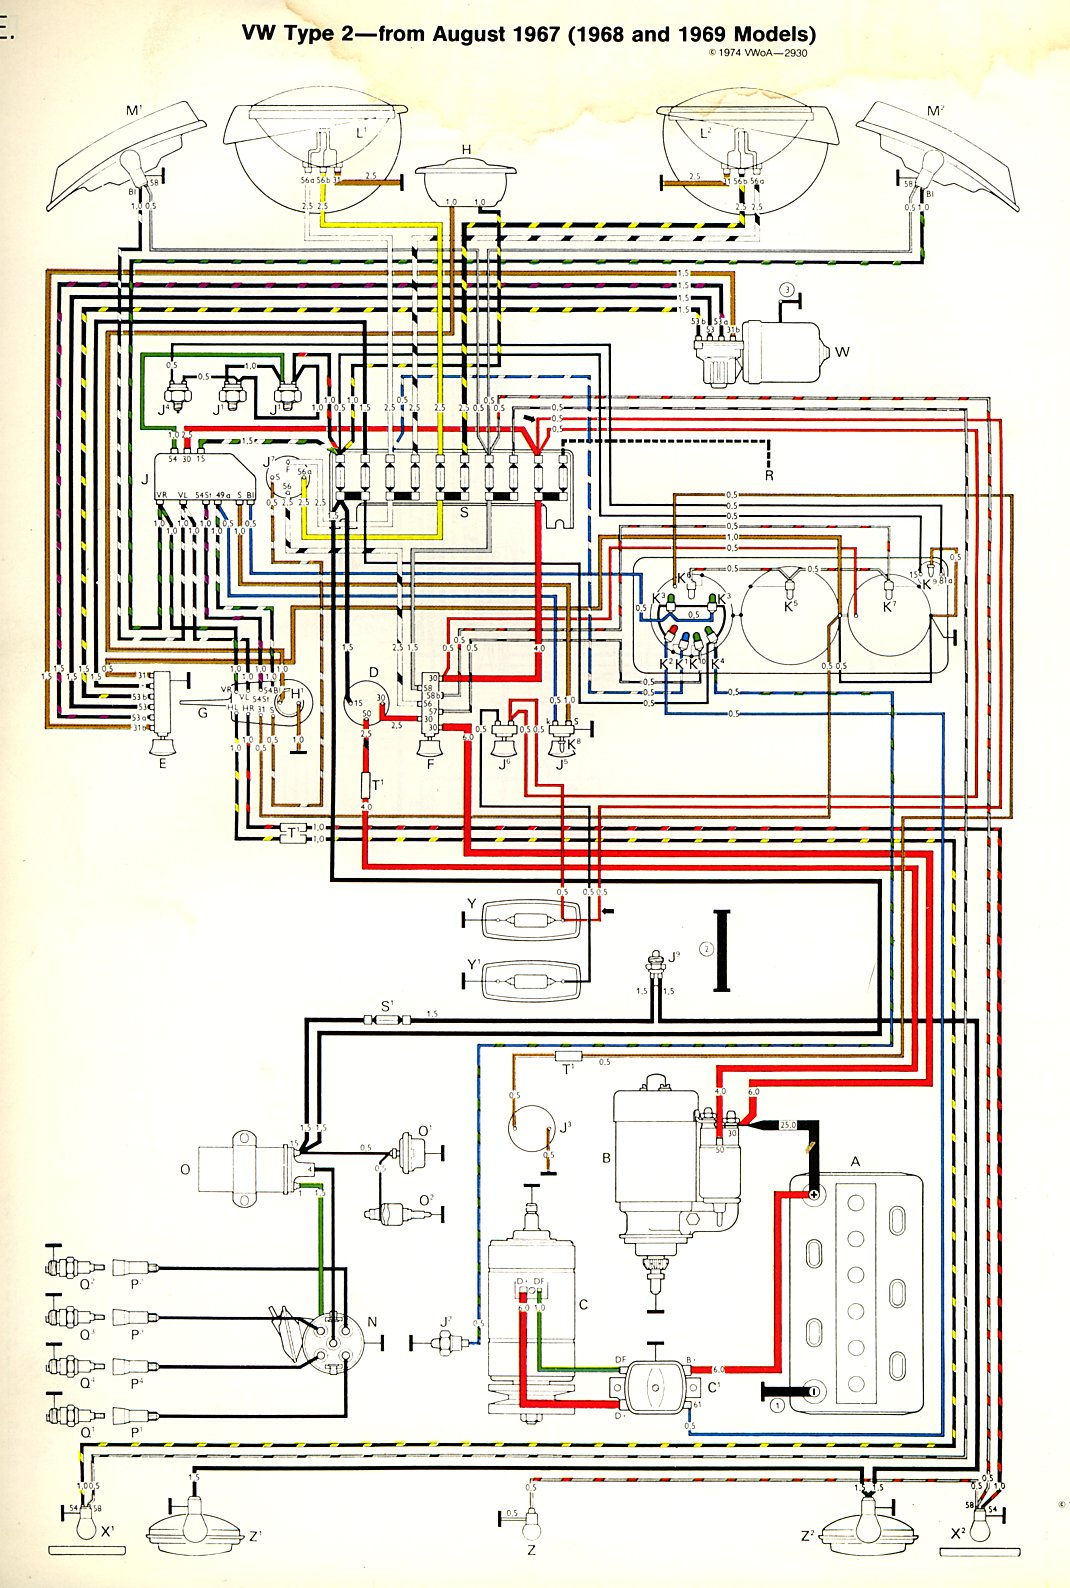 69 Road Runner Wiring Schematic. Keith Haring Road Runner ...